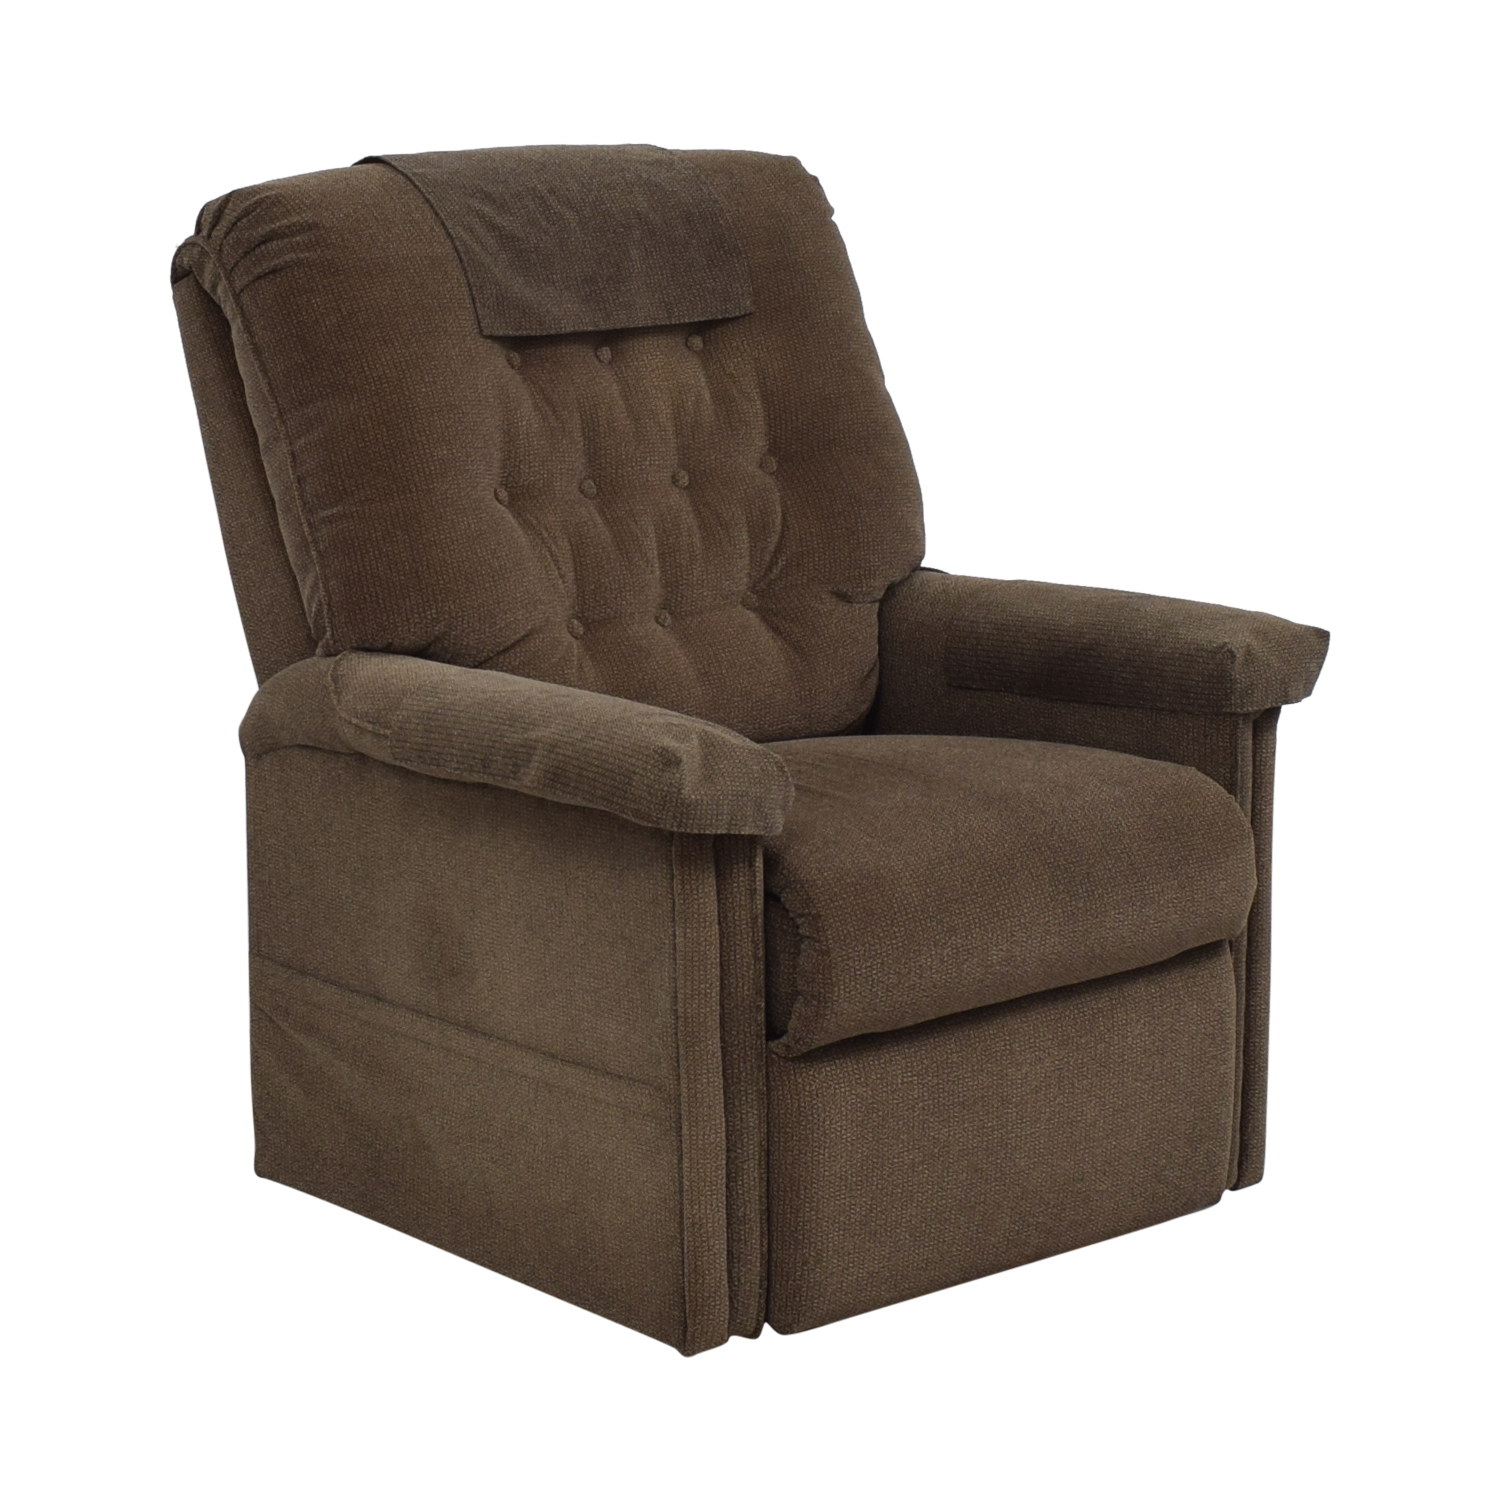 Pride Mobility Pride Mobility Brown Recliner discount